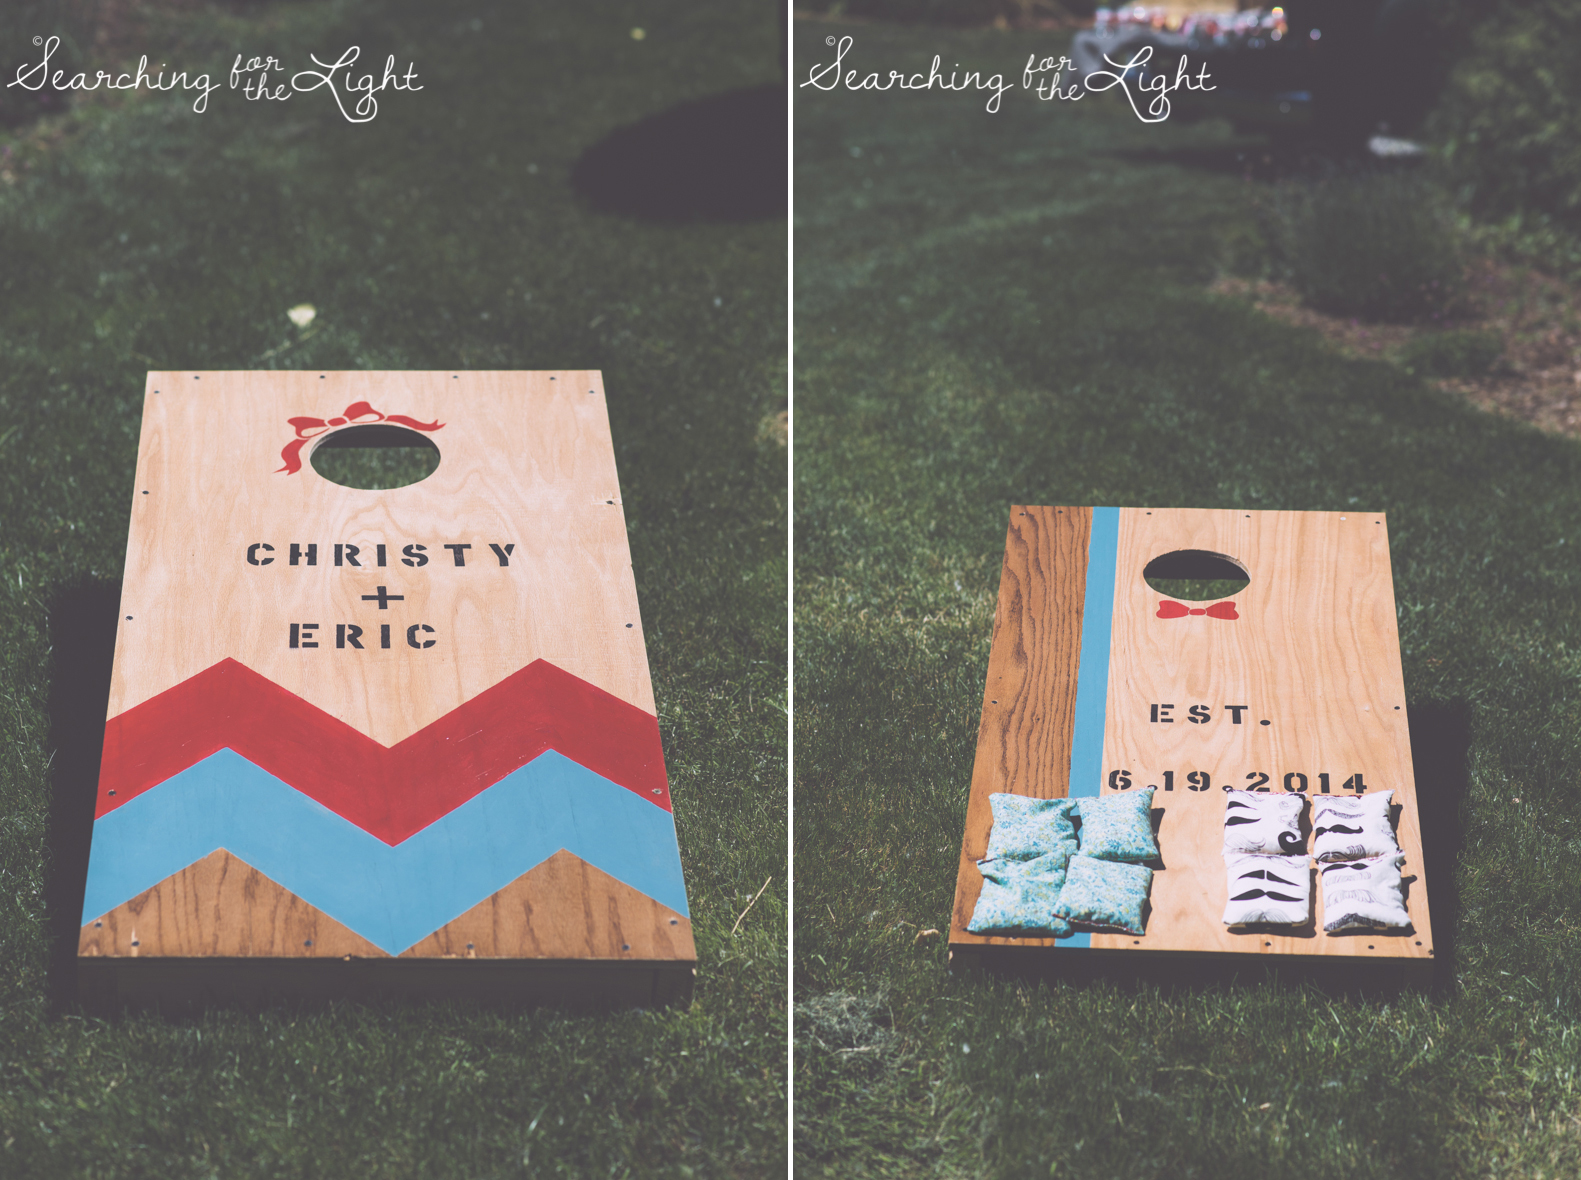 lyons farmette wedding photo, colorado wedding photographer, denver wedding photographer, corn hole yard games at wedding cocktail hour